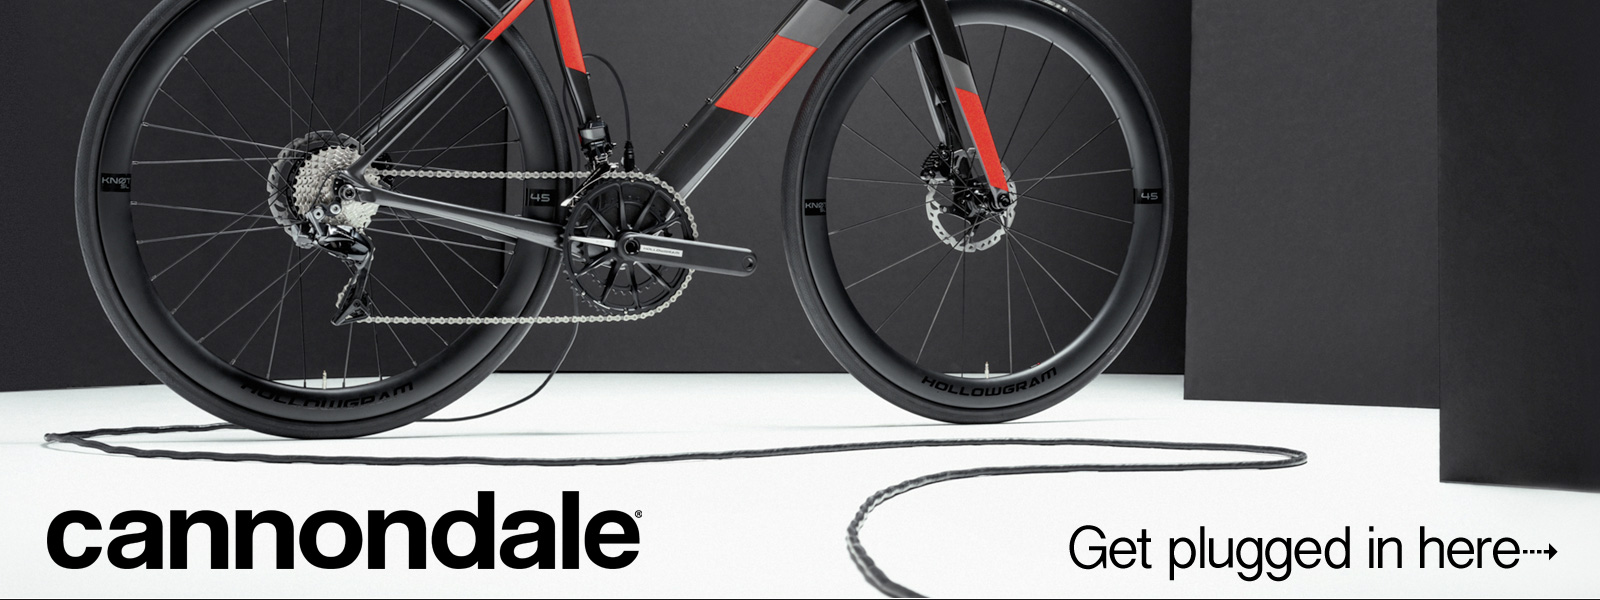 Cannondale 2021 eBikes